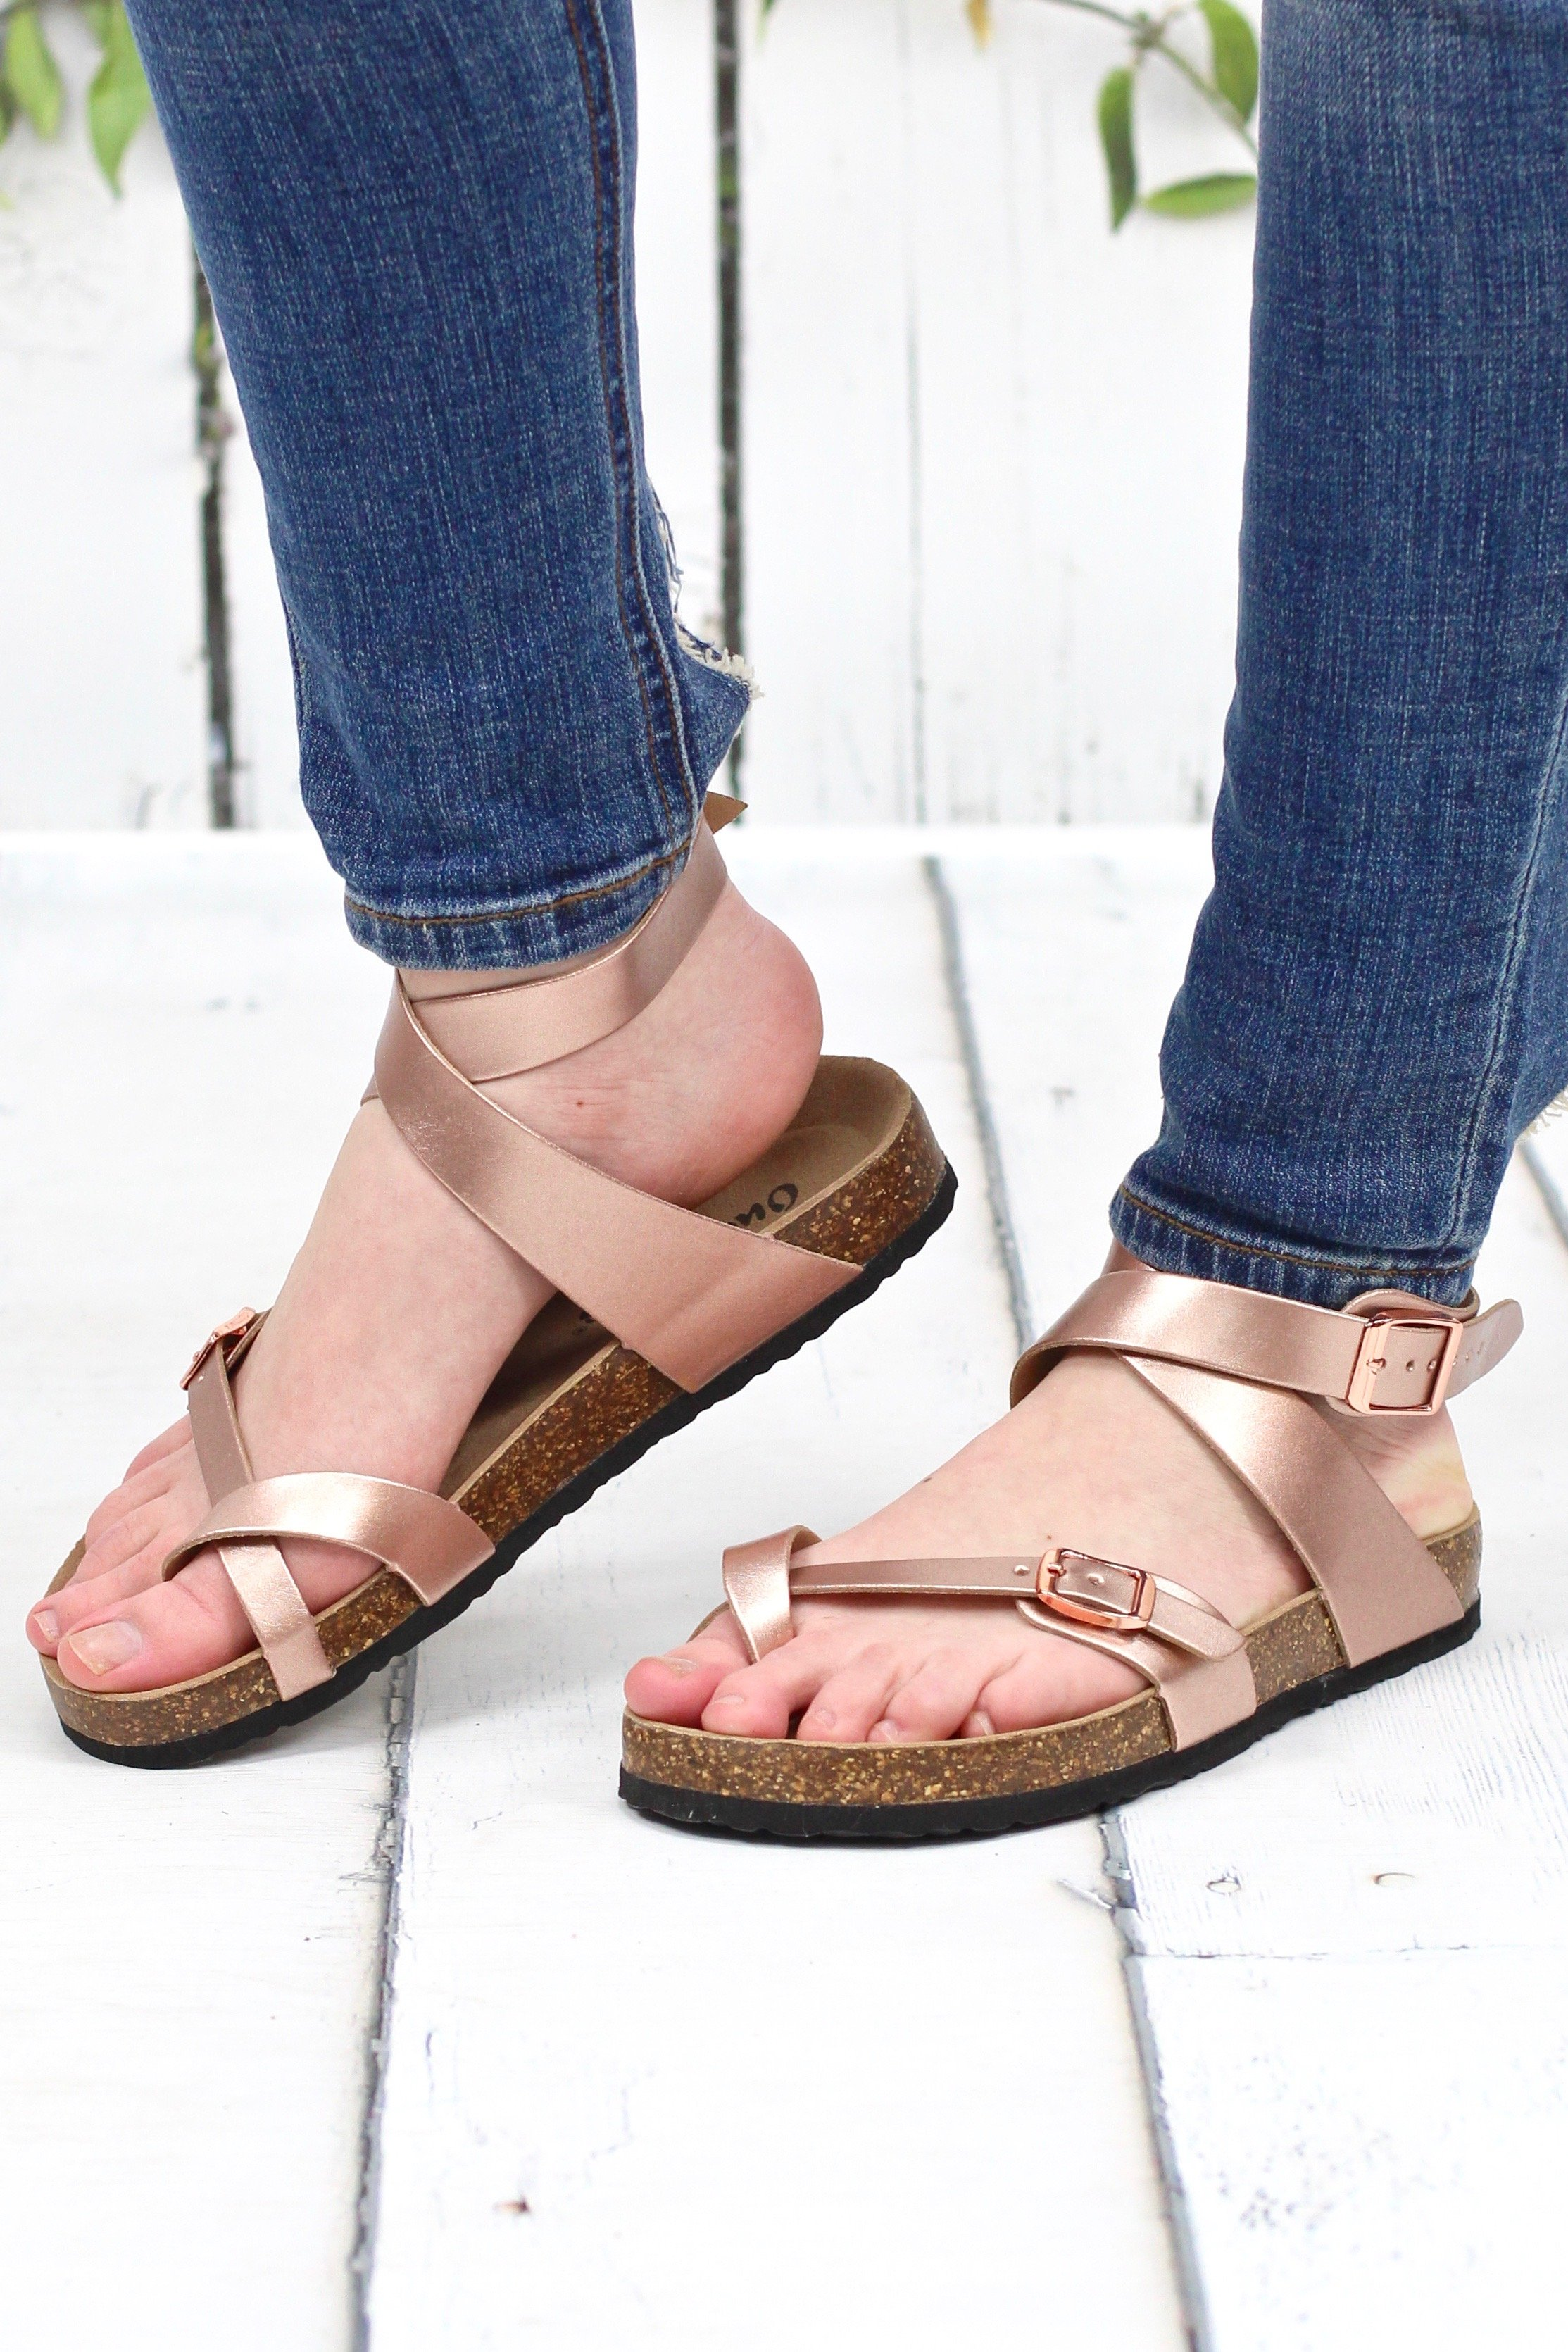 aa7e10c9627 We are loving these toe strap sandals that feature a wrap around ankle  strap. So cute for spring and summer. They look like Birkenstock s for a  fraction of ...